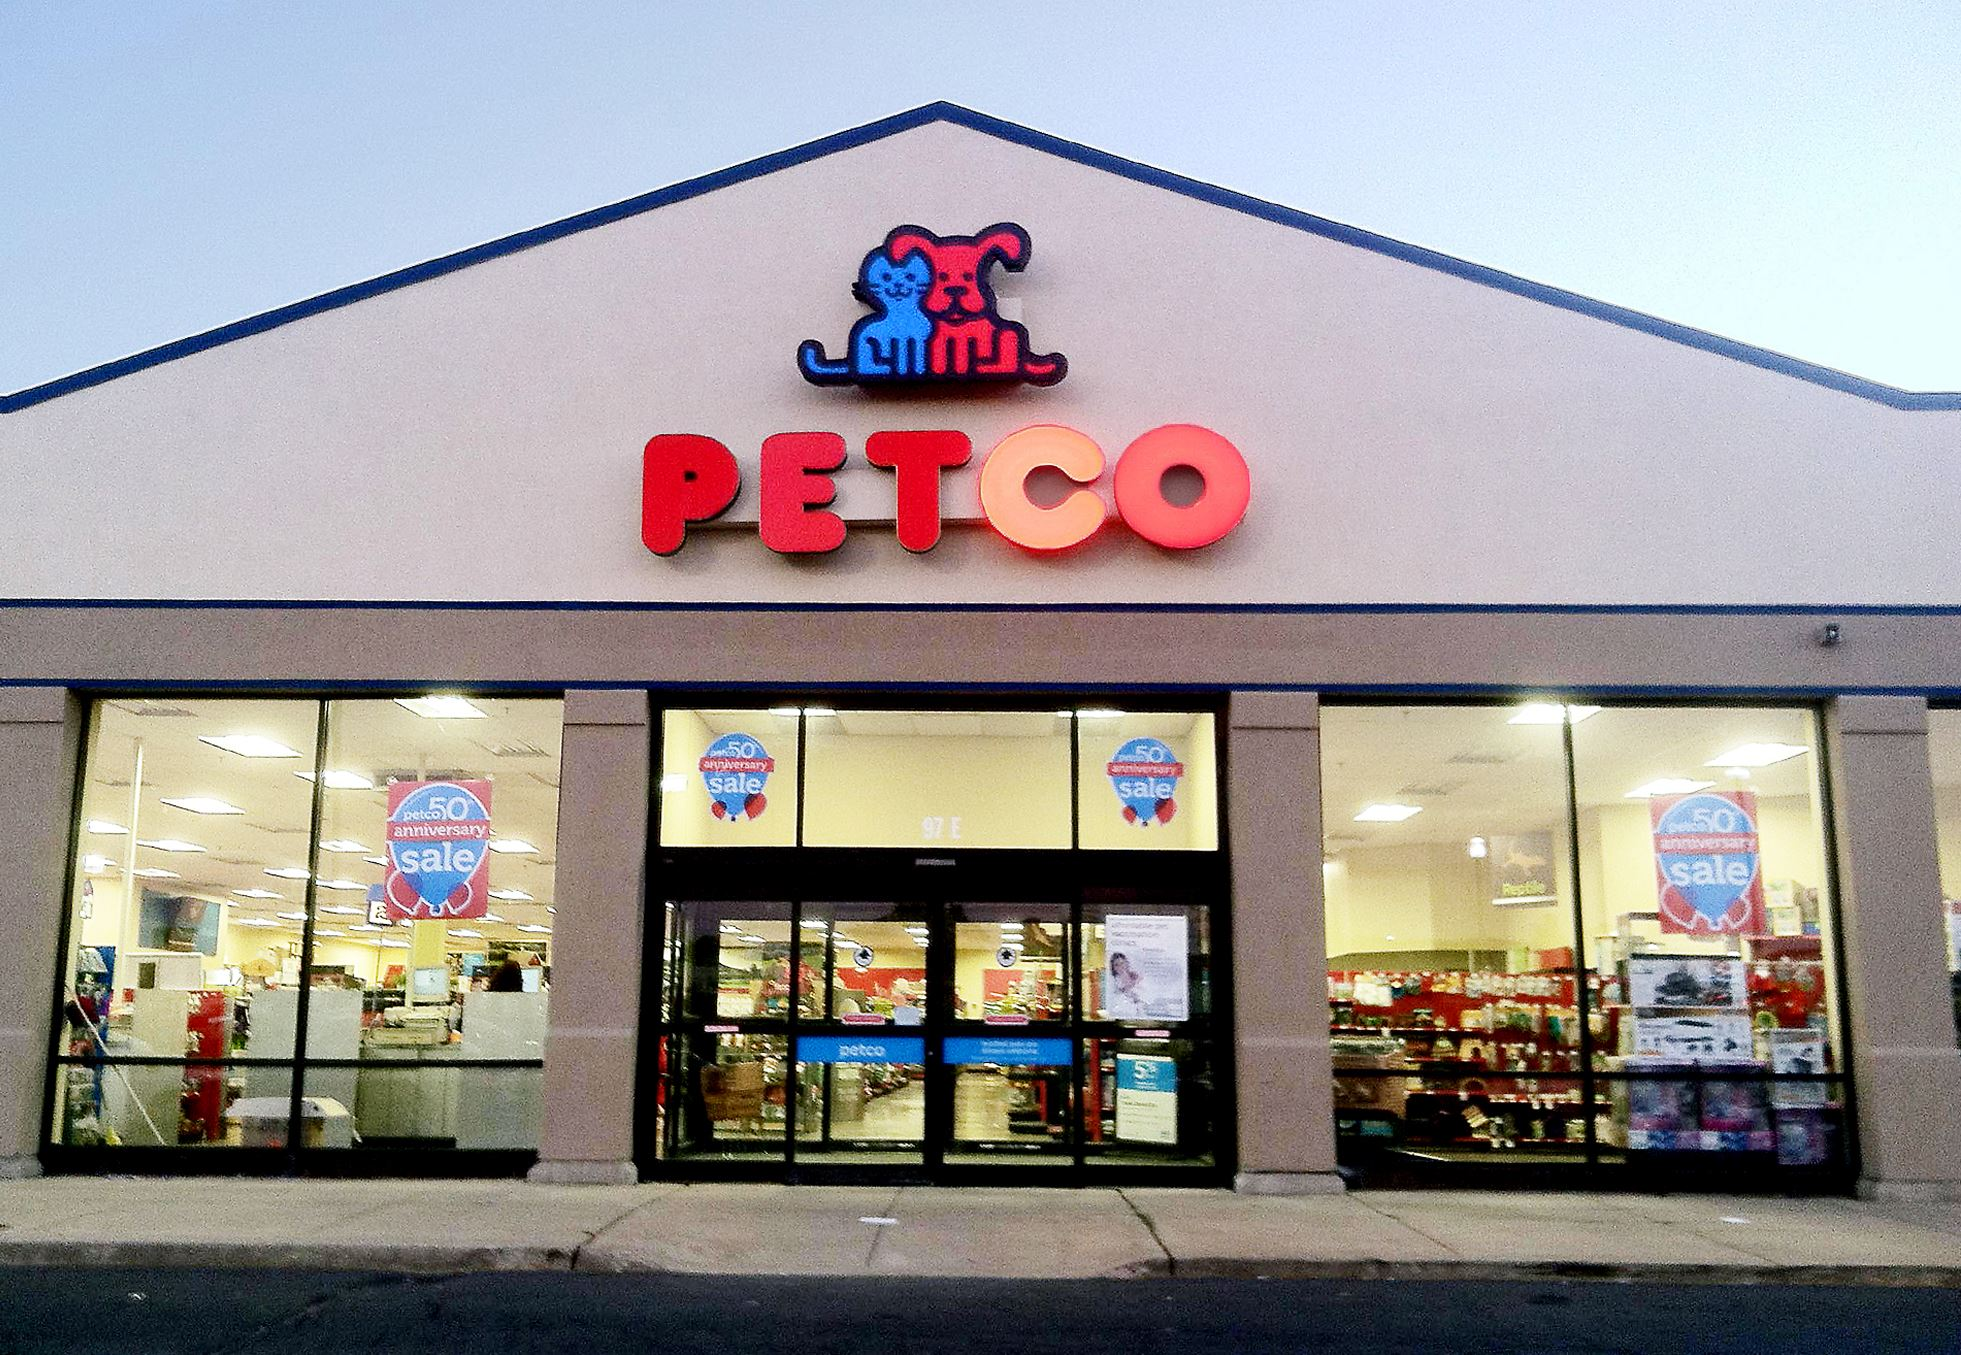 For more information on Petco, visit multivarkaixm2f.ga For more information on Canadian Tire, visit multivarkaixm2f.ga About Petco and the Petco Foundation. Petco is a leading pet specialty retailer with more than 50 years of service to pet parents. Everything we do is guided by our vision for Healthier Pets. Happier People. Better World.